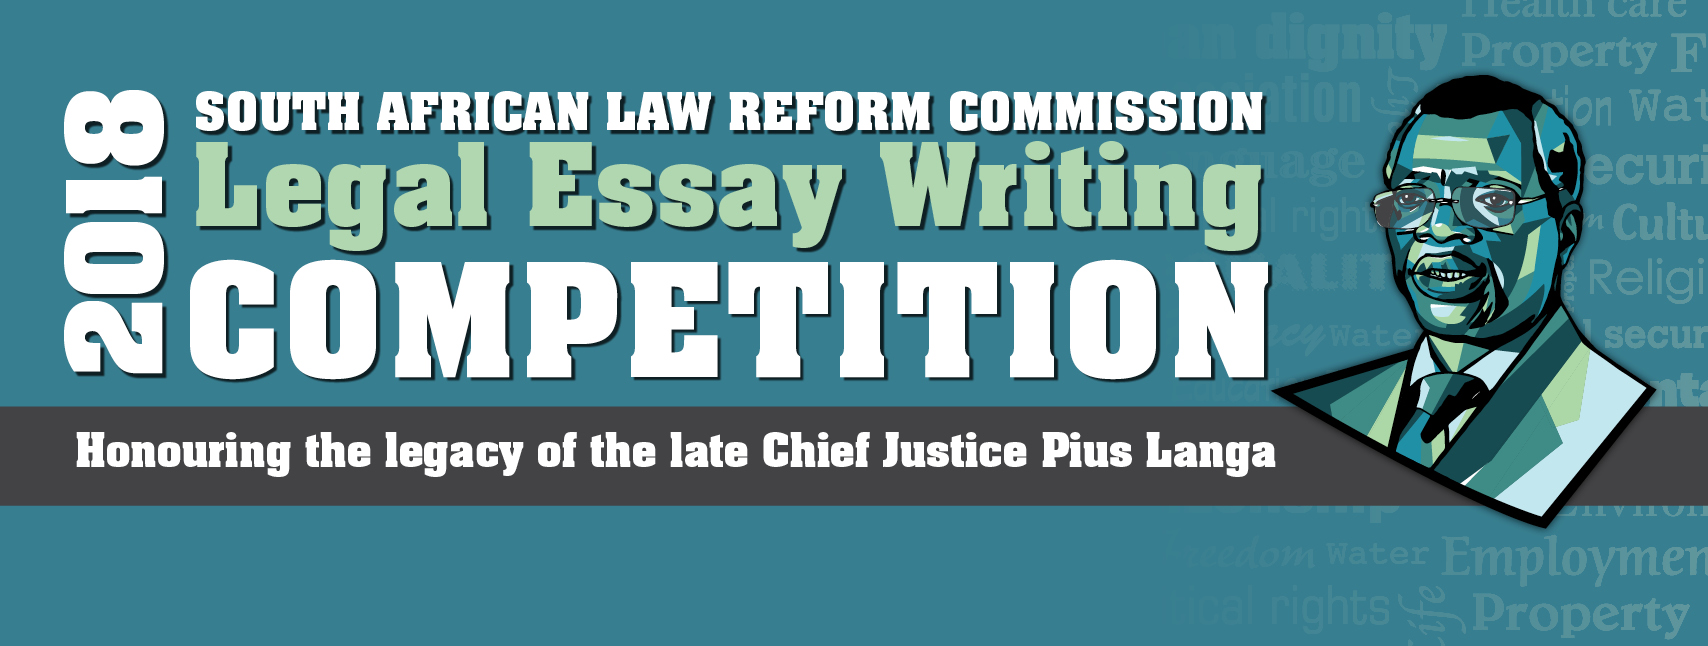 South African Law Reform Commission Legal Essay Competition 2018 (Up to R70,000)